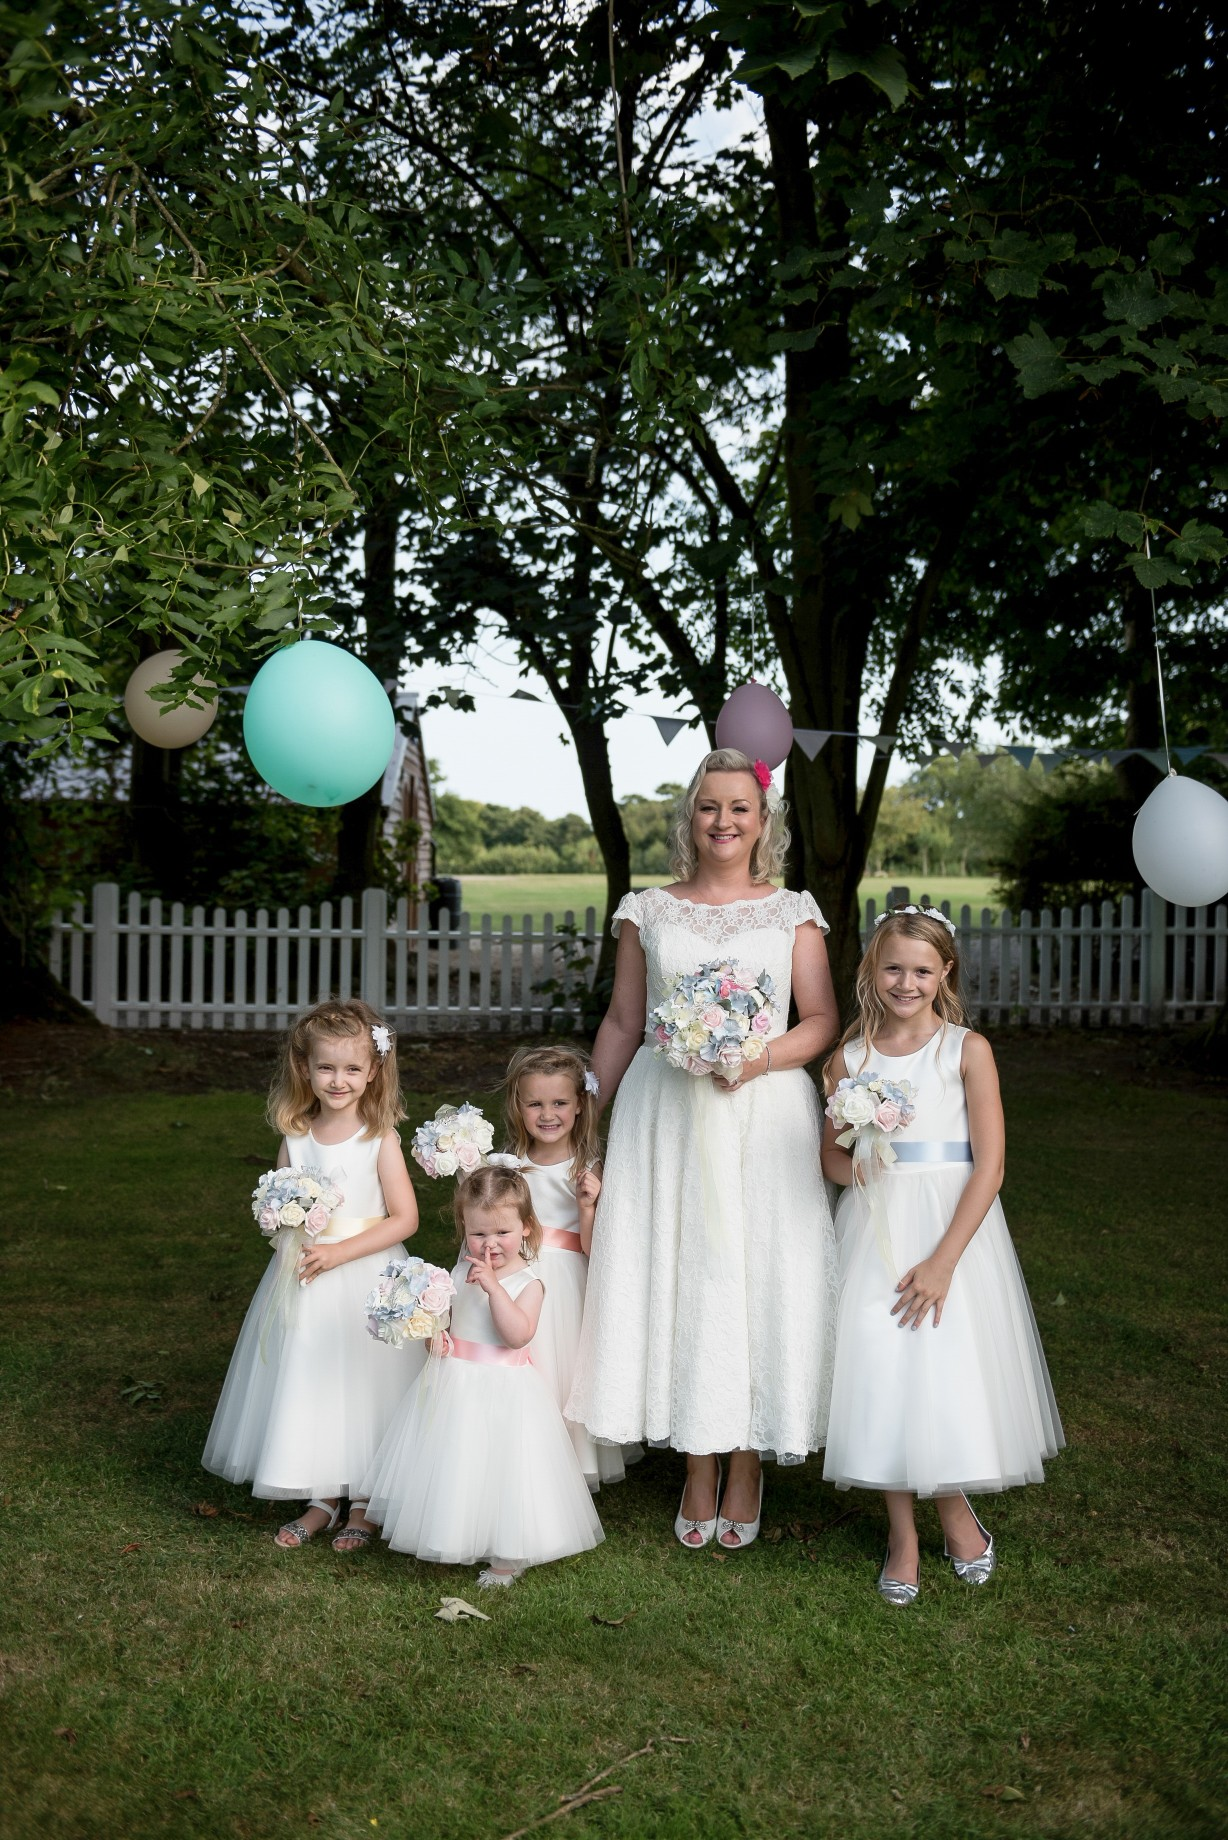 Wedding photography - rustic themed wedding at Hayne House in Saltwood, Kent - bride and bridesmaids